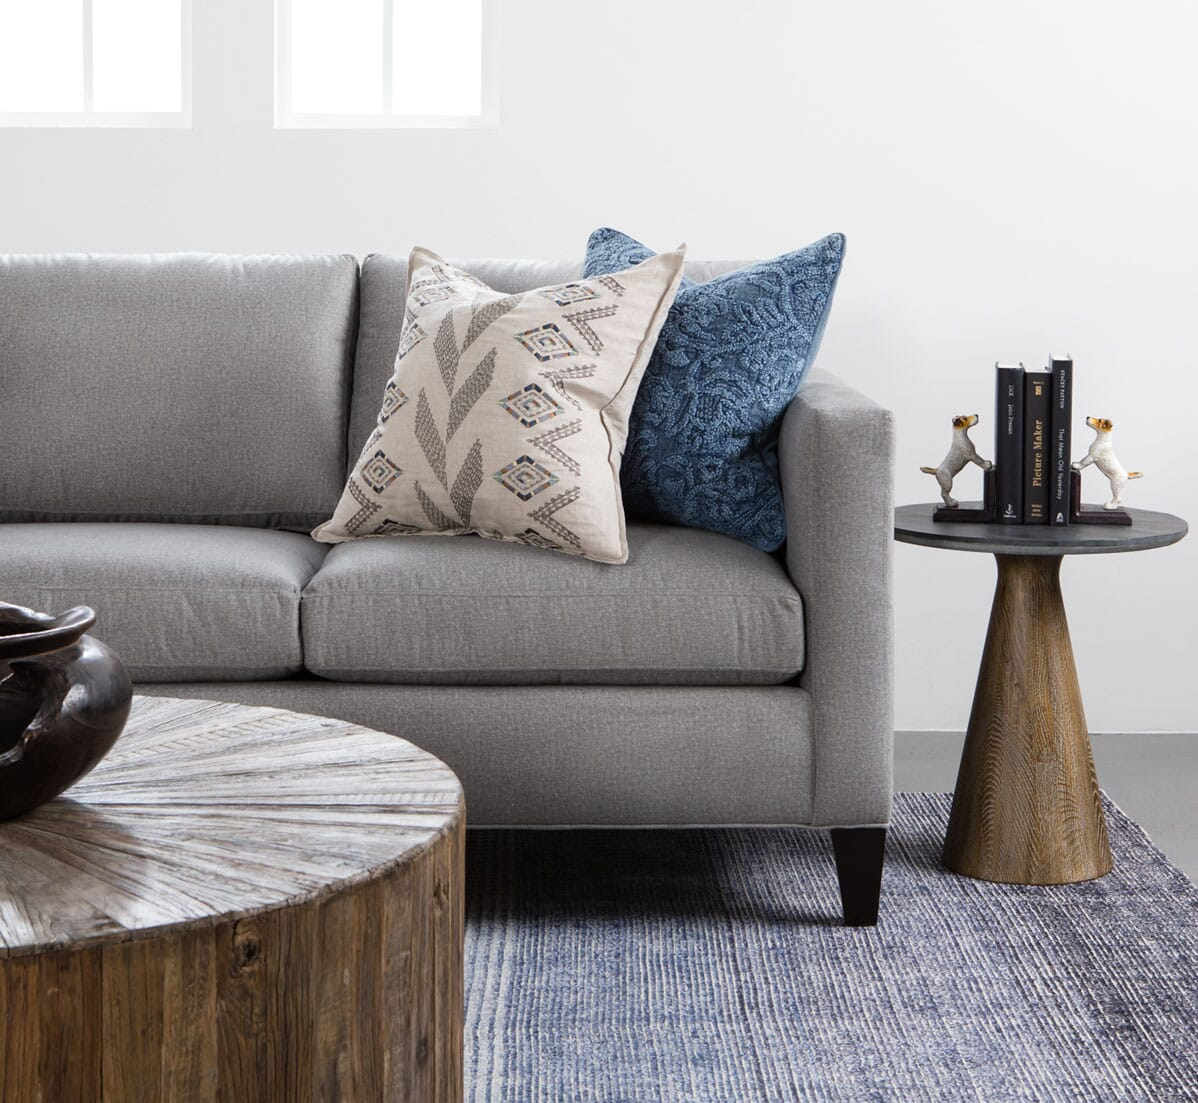 Quality Living Room Furniture   August Haven   Wisconsin Furniture, Home  Décor, Interior Design Services, Free Consultations. Green Bay, Appleton  And Door ...